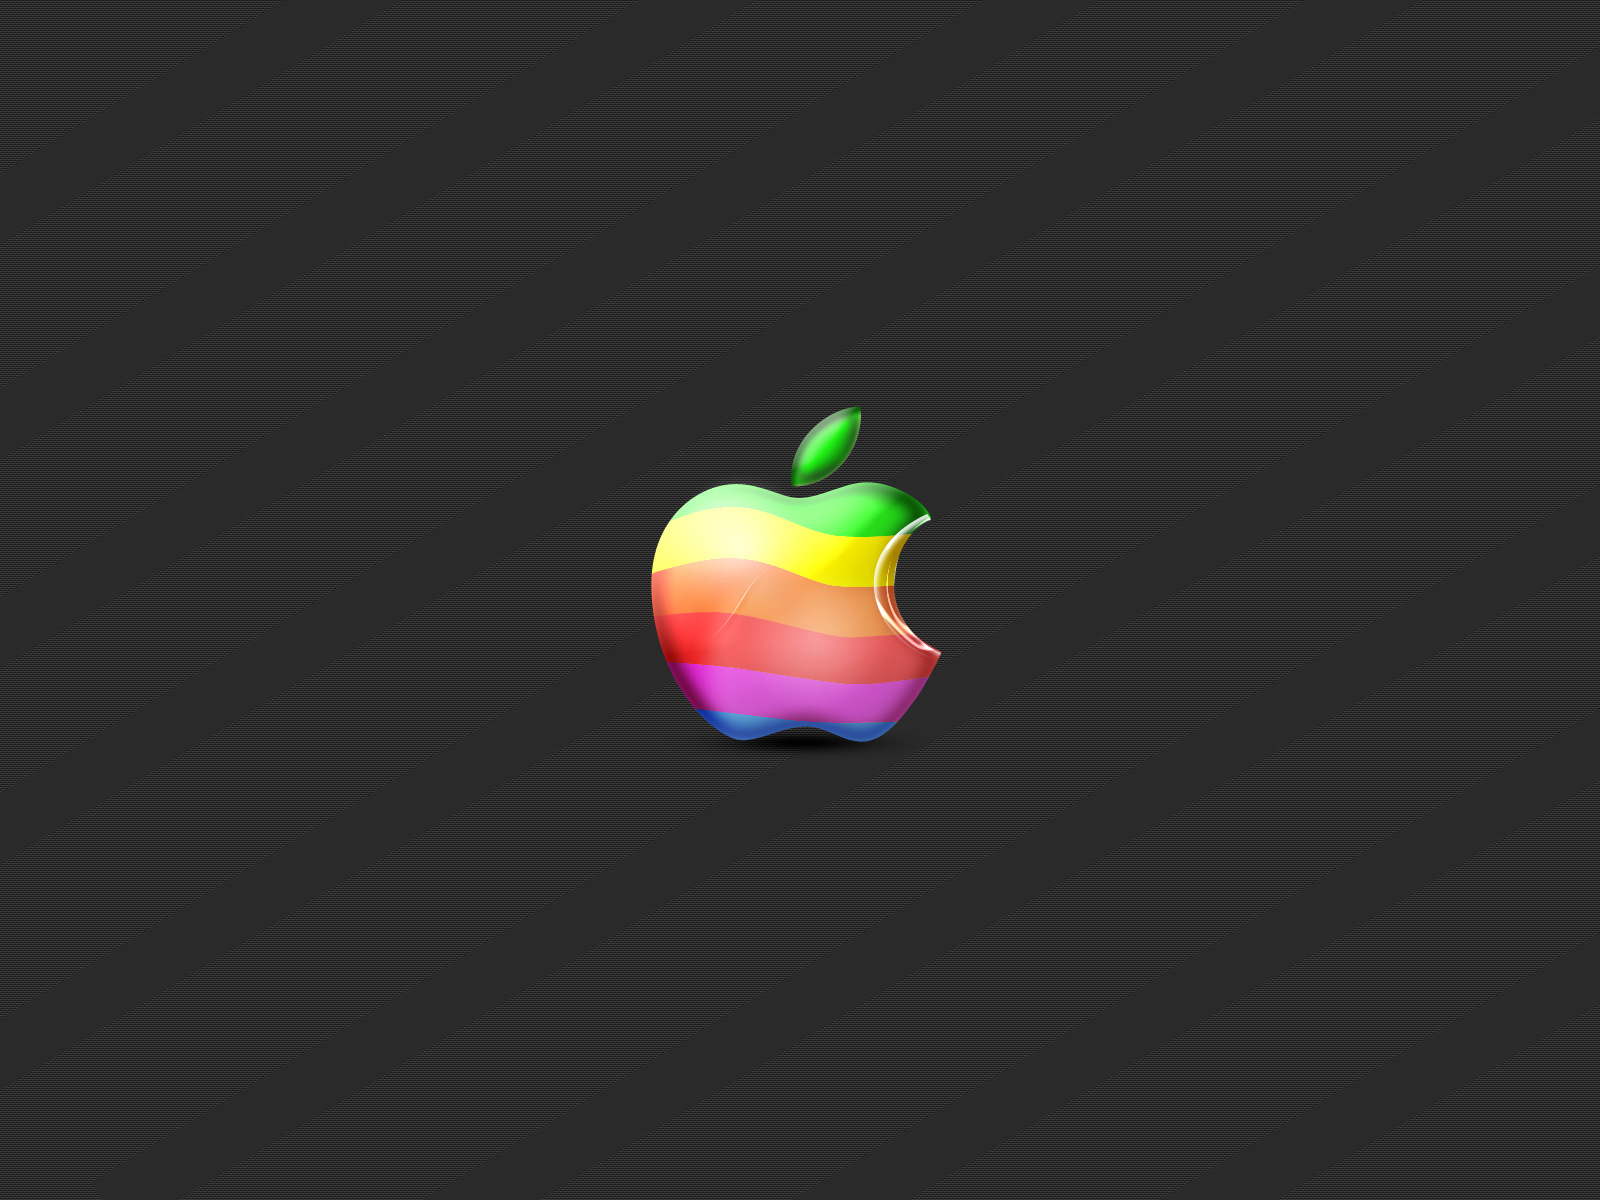 cool apple wallpaper cool wallpaper cool wallpaper for desktop cool